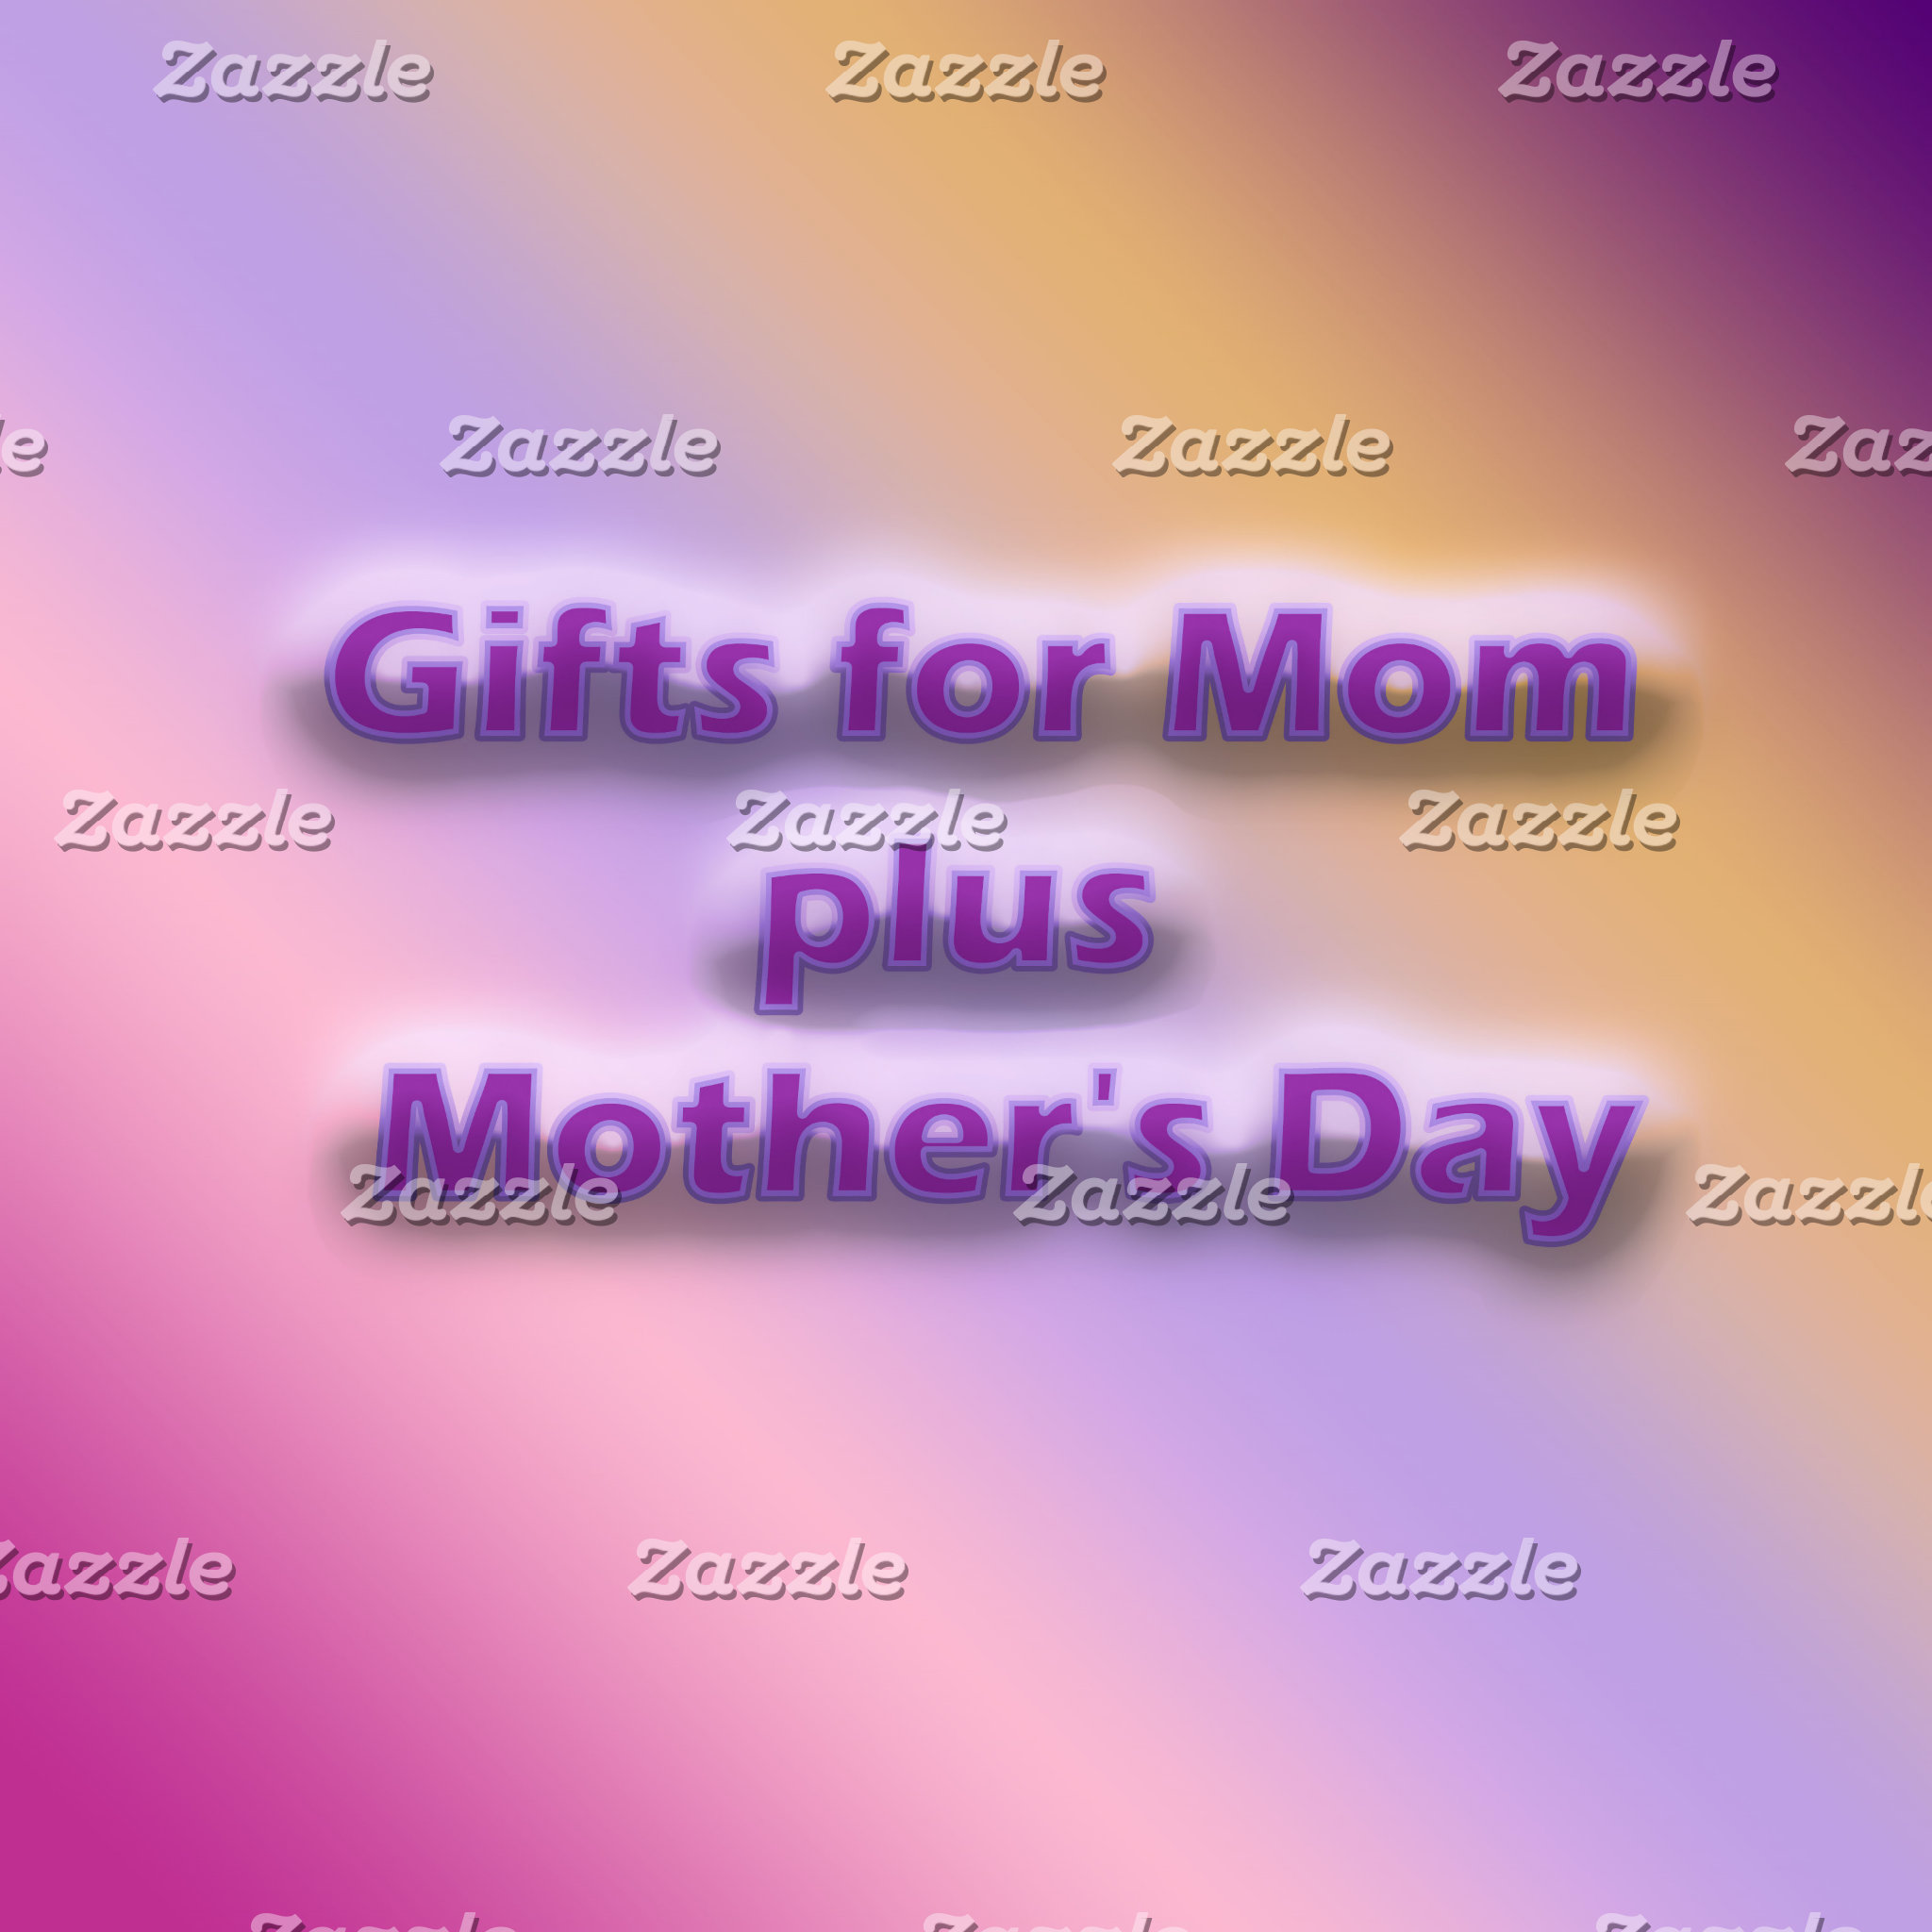 Gifts for Mom plus Mother's Day